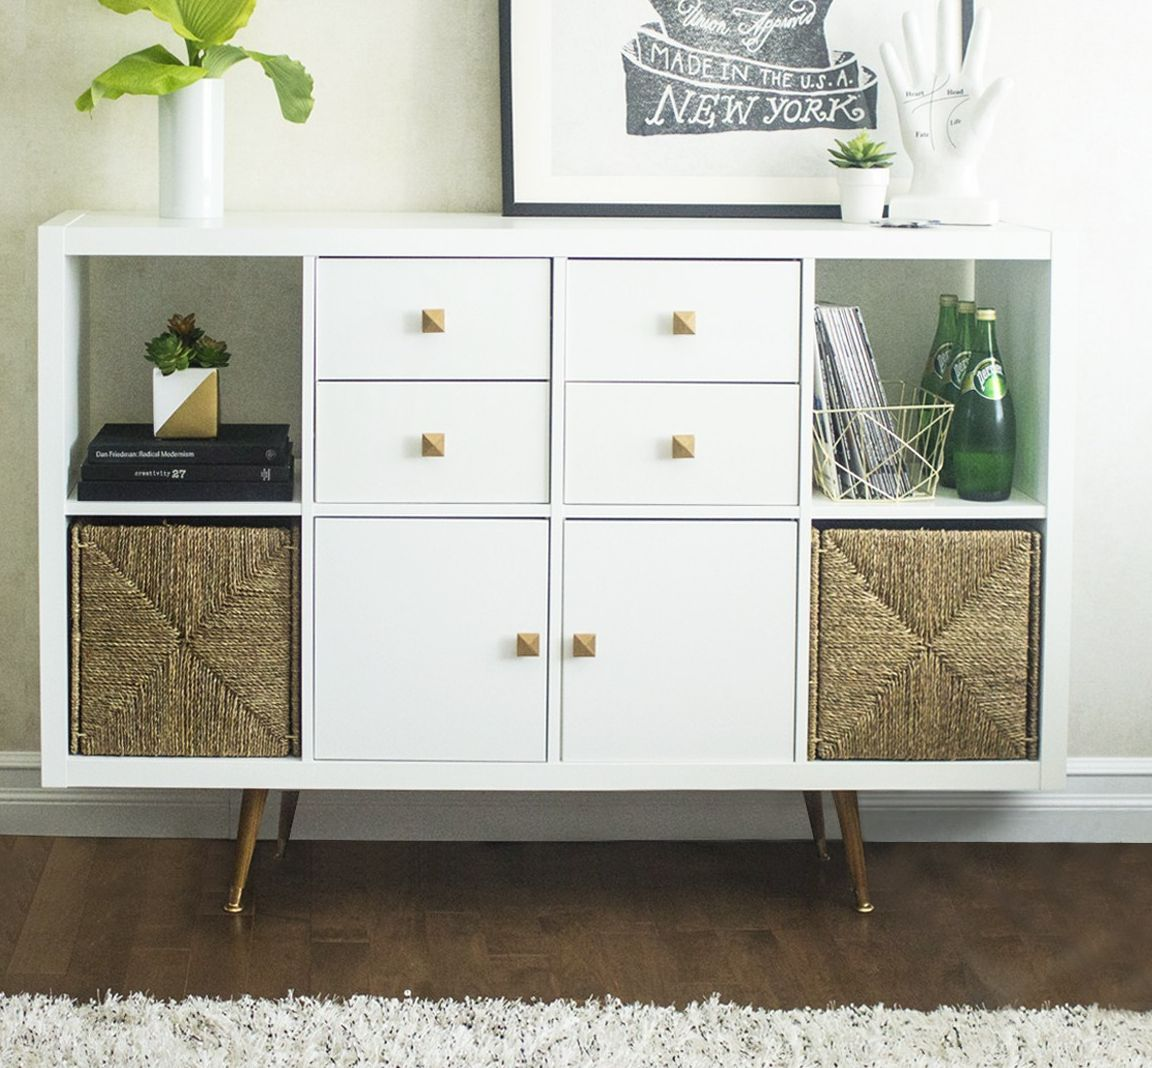 Super Easy Ikea Hacks Anyone Can Pull Off